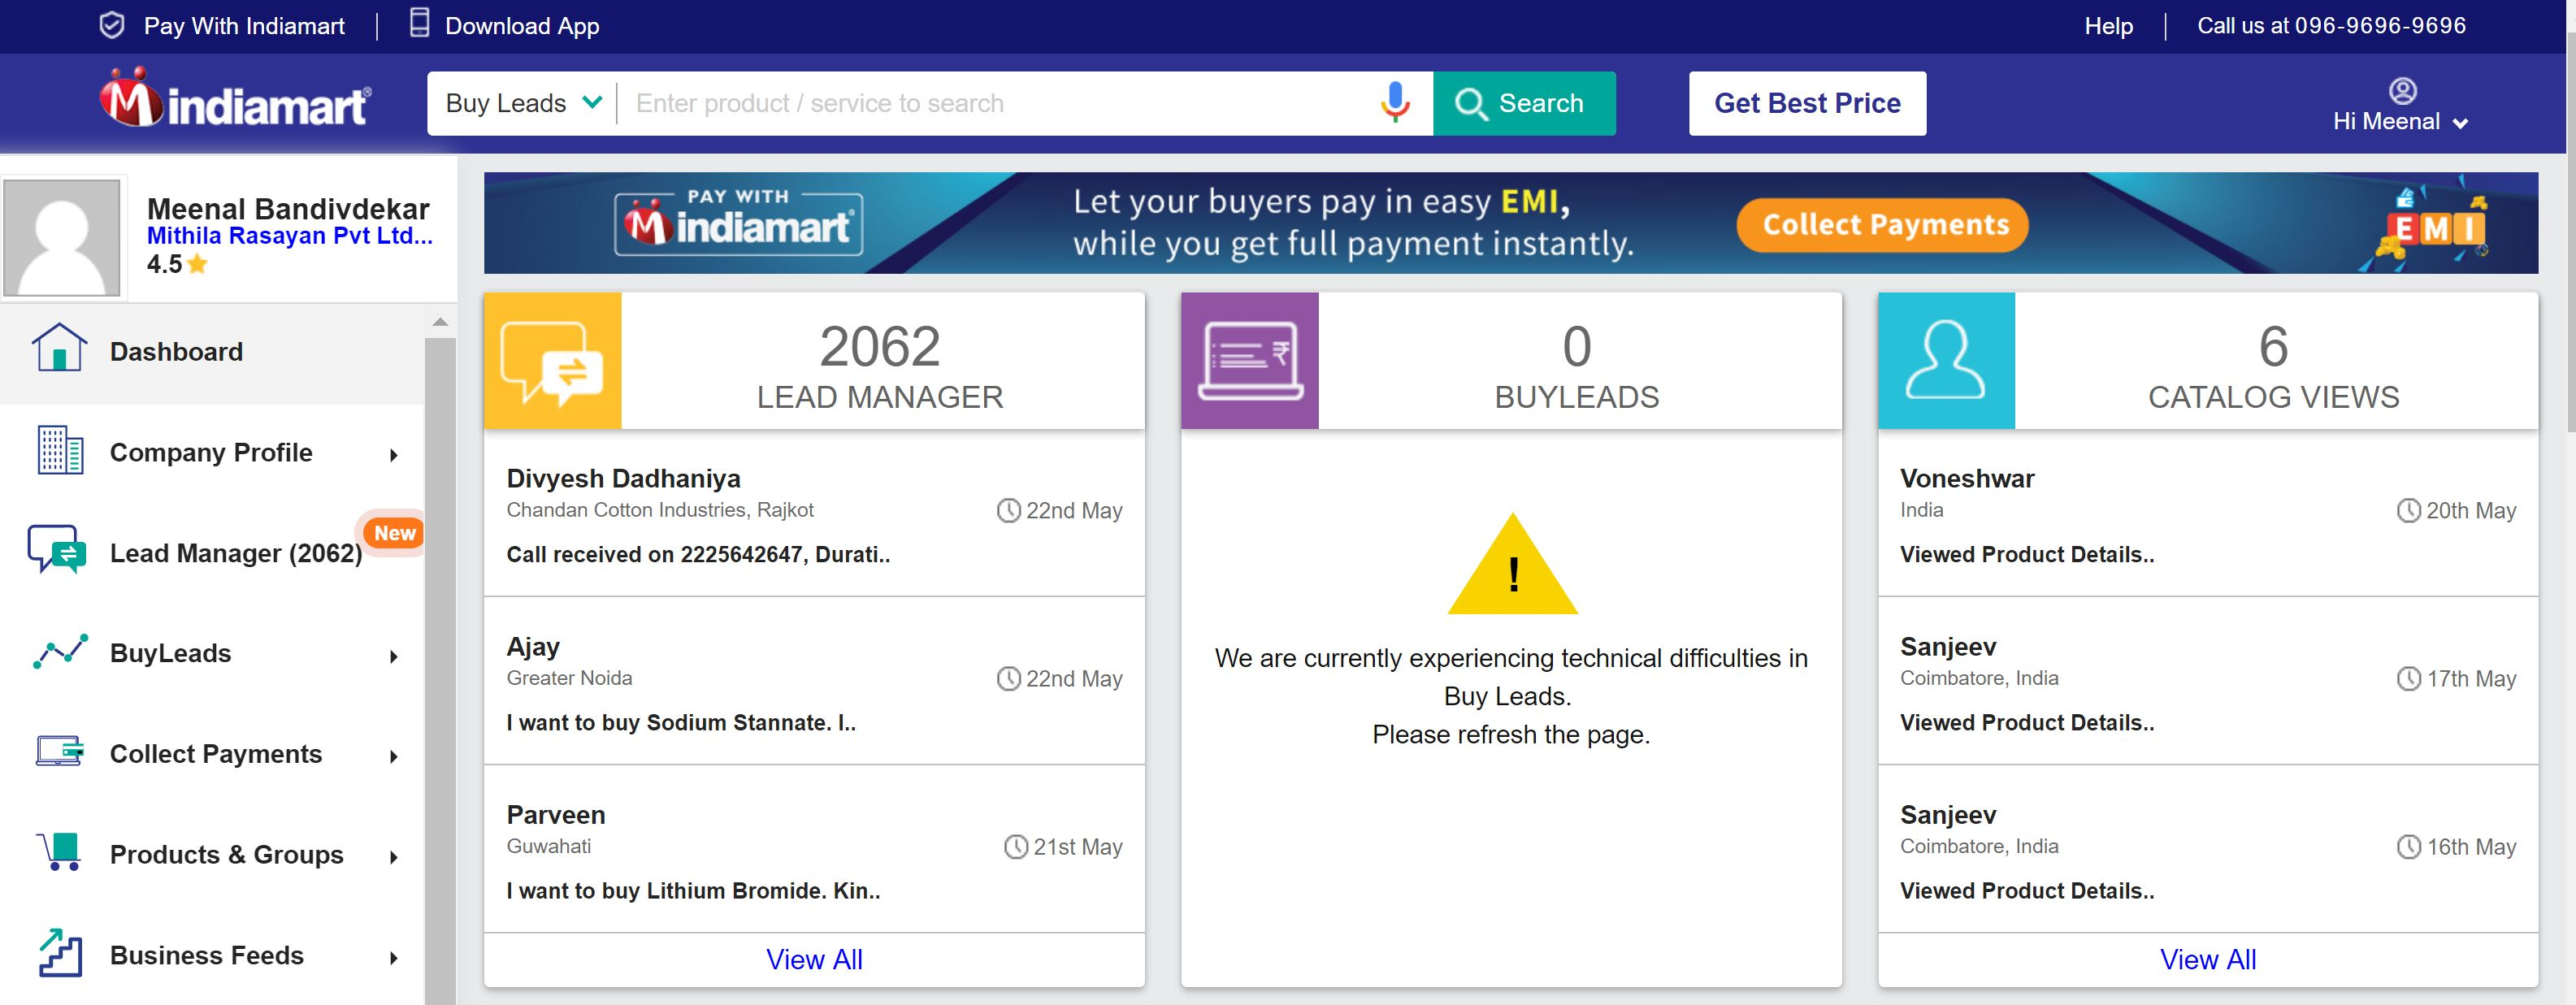 What is IndiaMART Dashboard and how do I access it